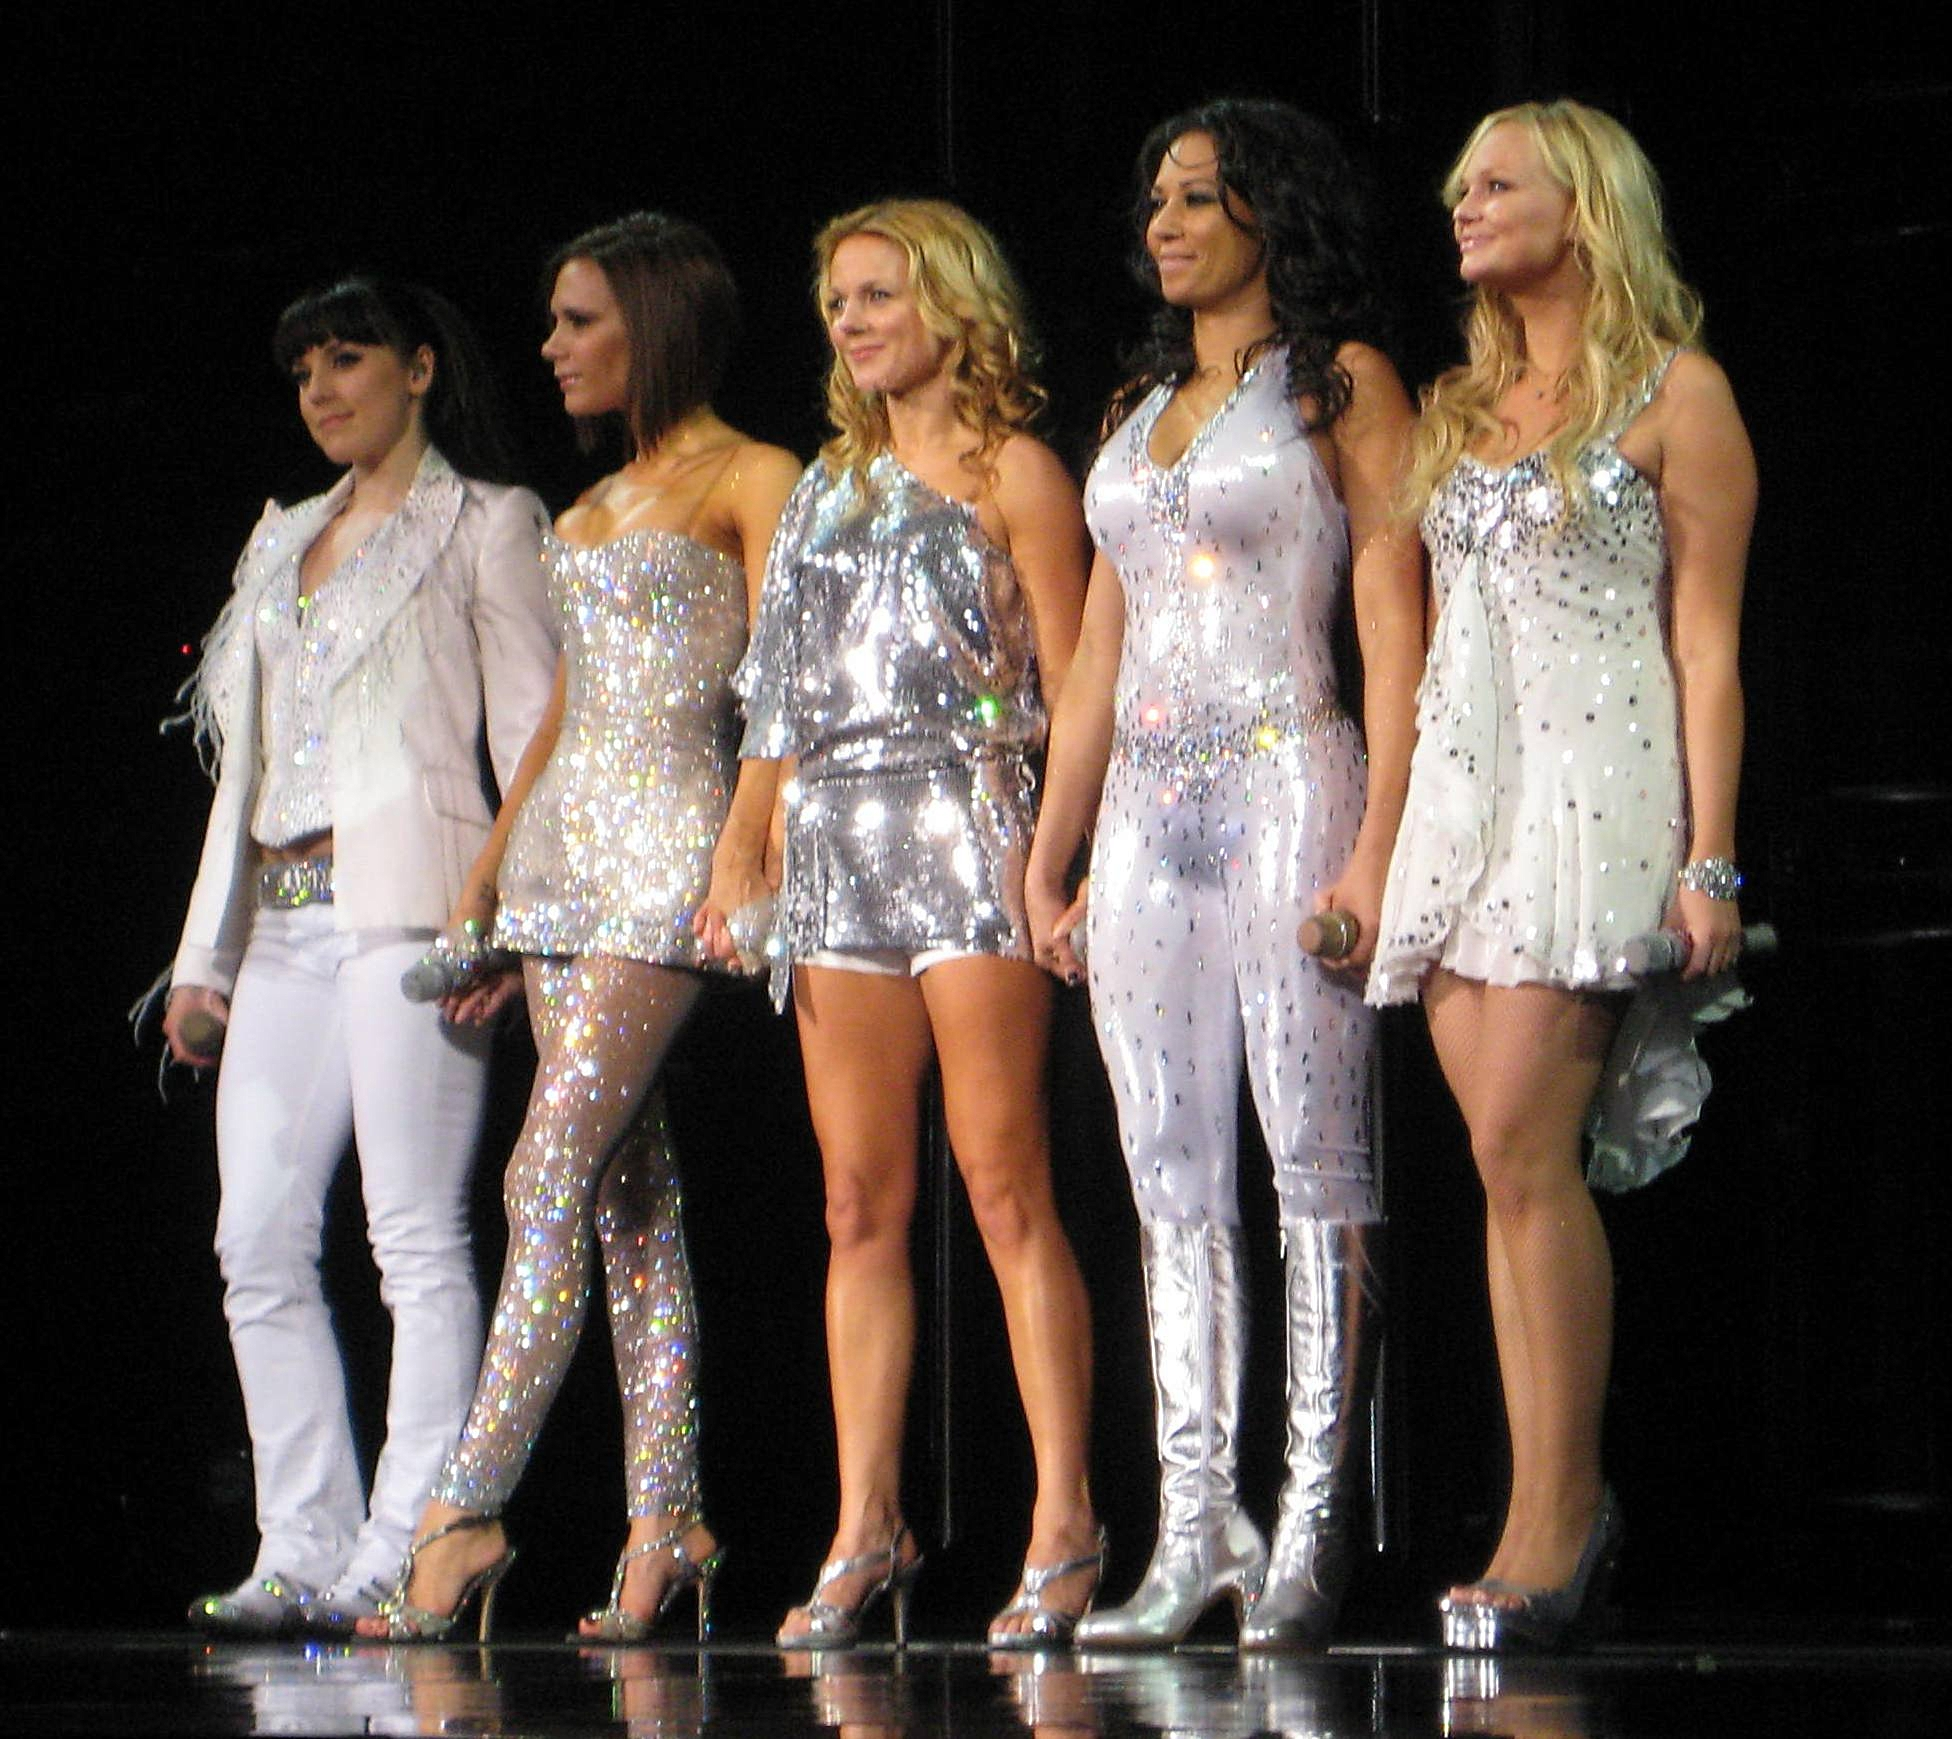 Description spice girls in toronto ontario